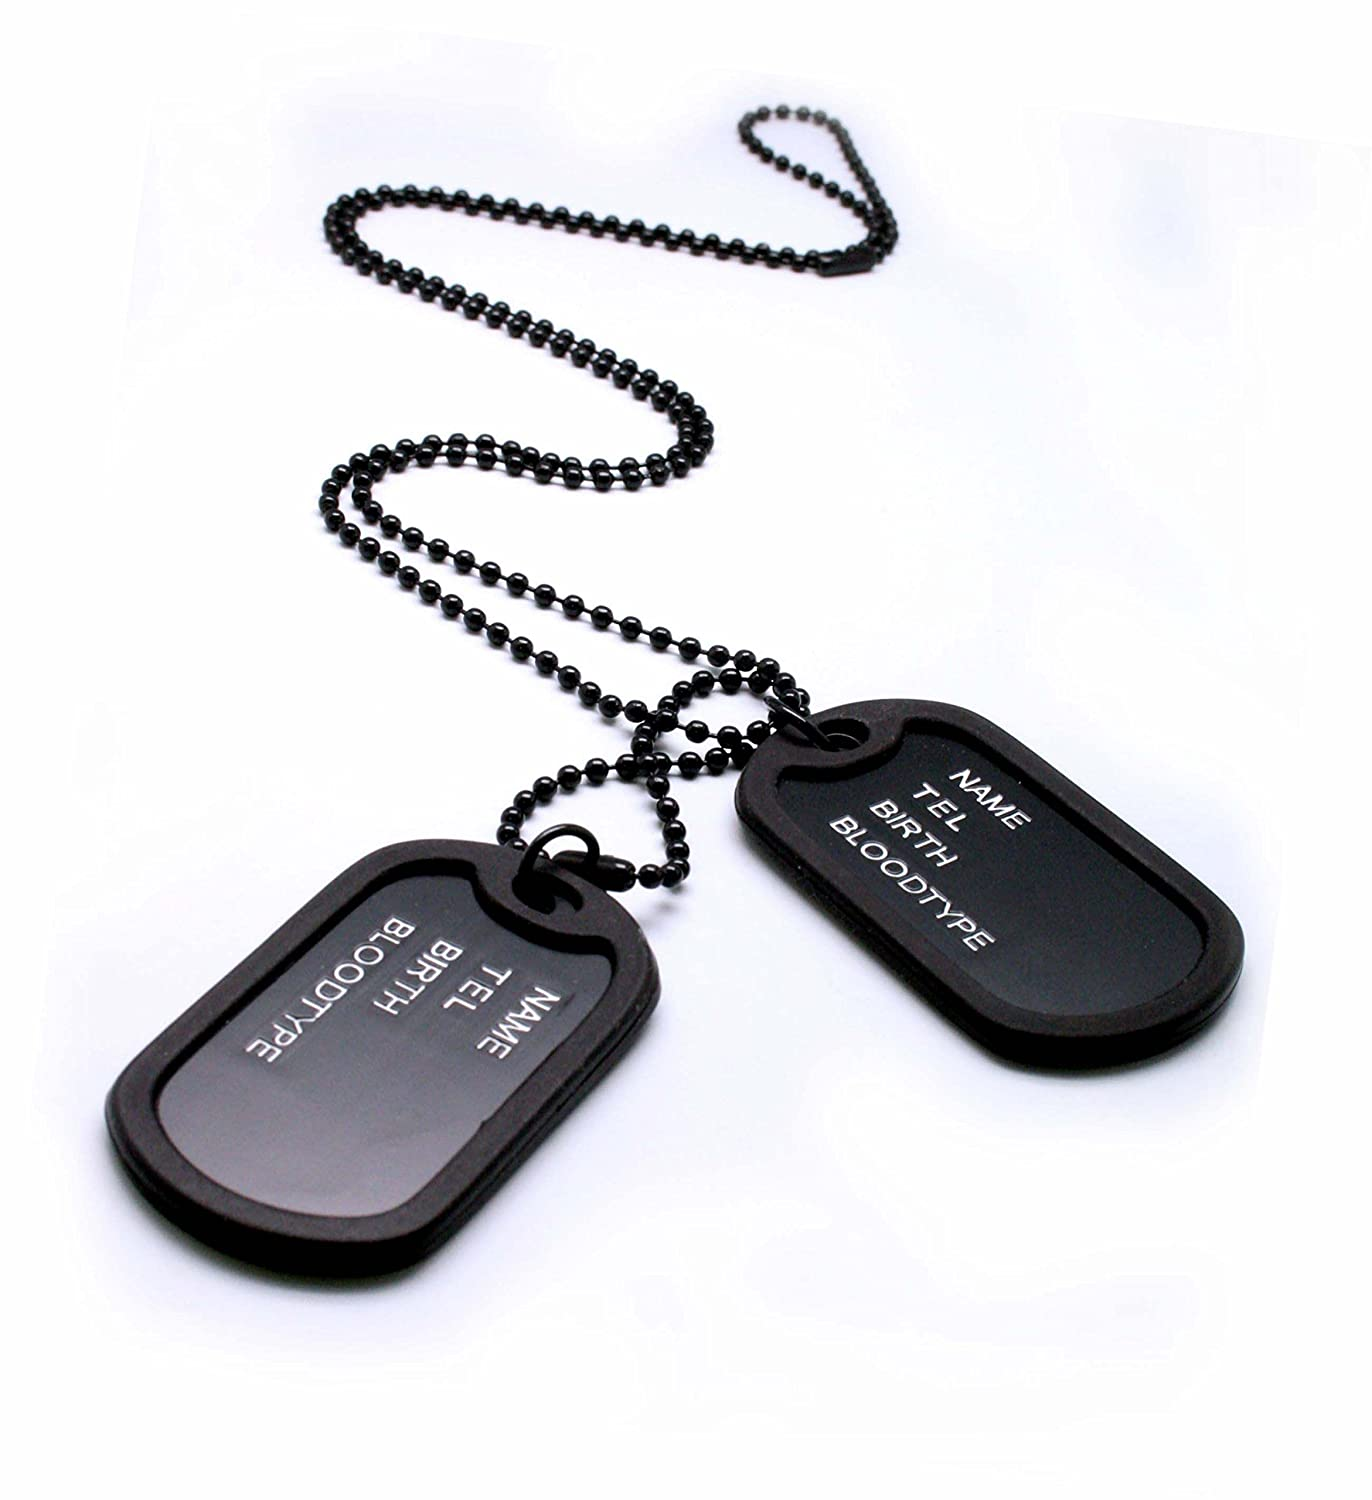 dog military amazon necklace black chain com tags dp army style mens pendant